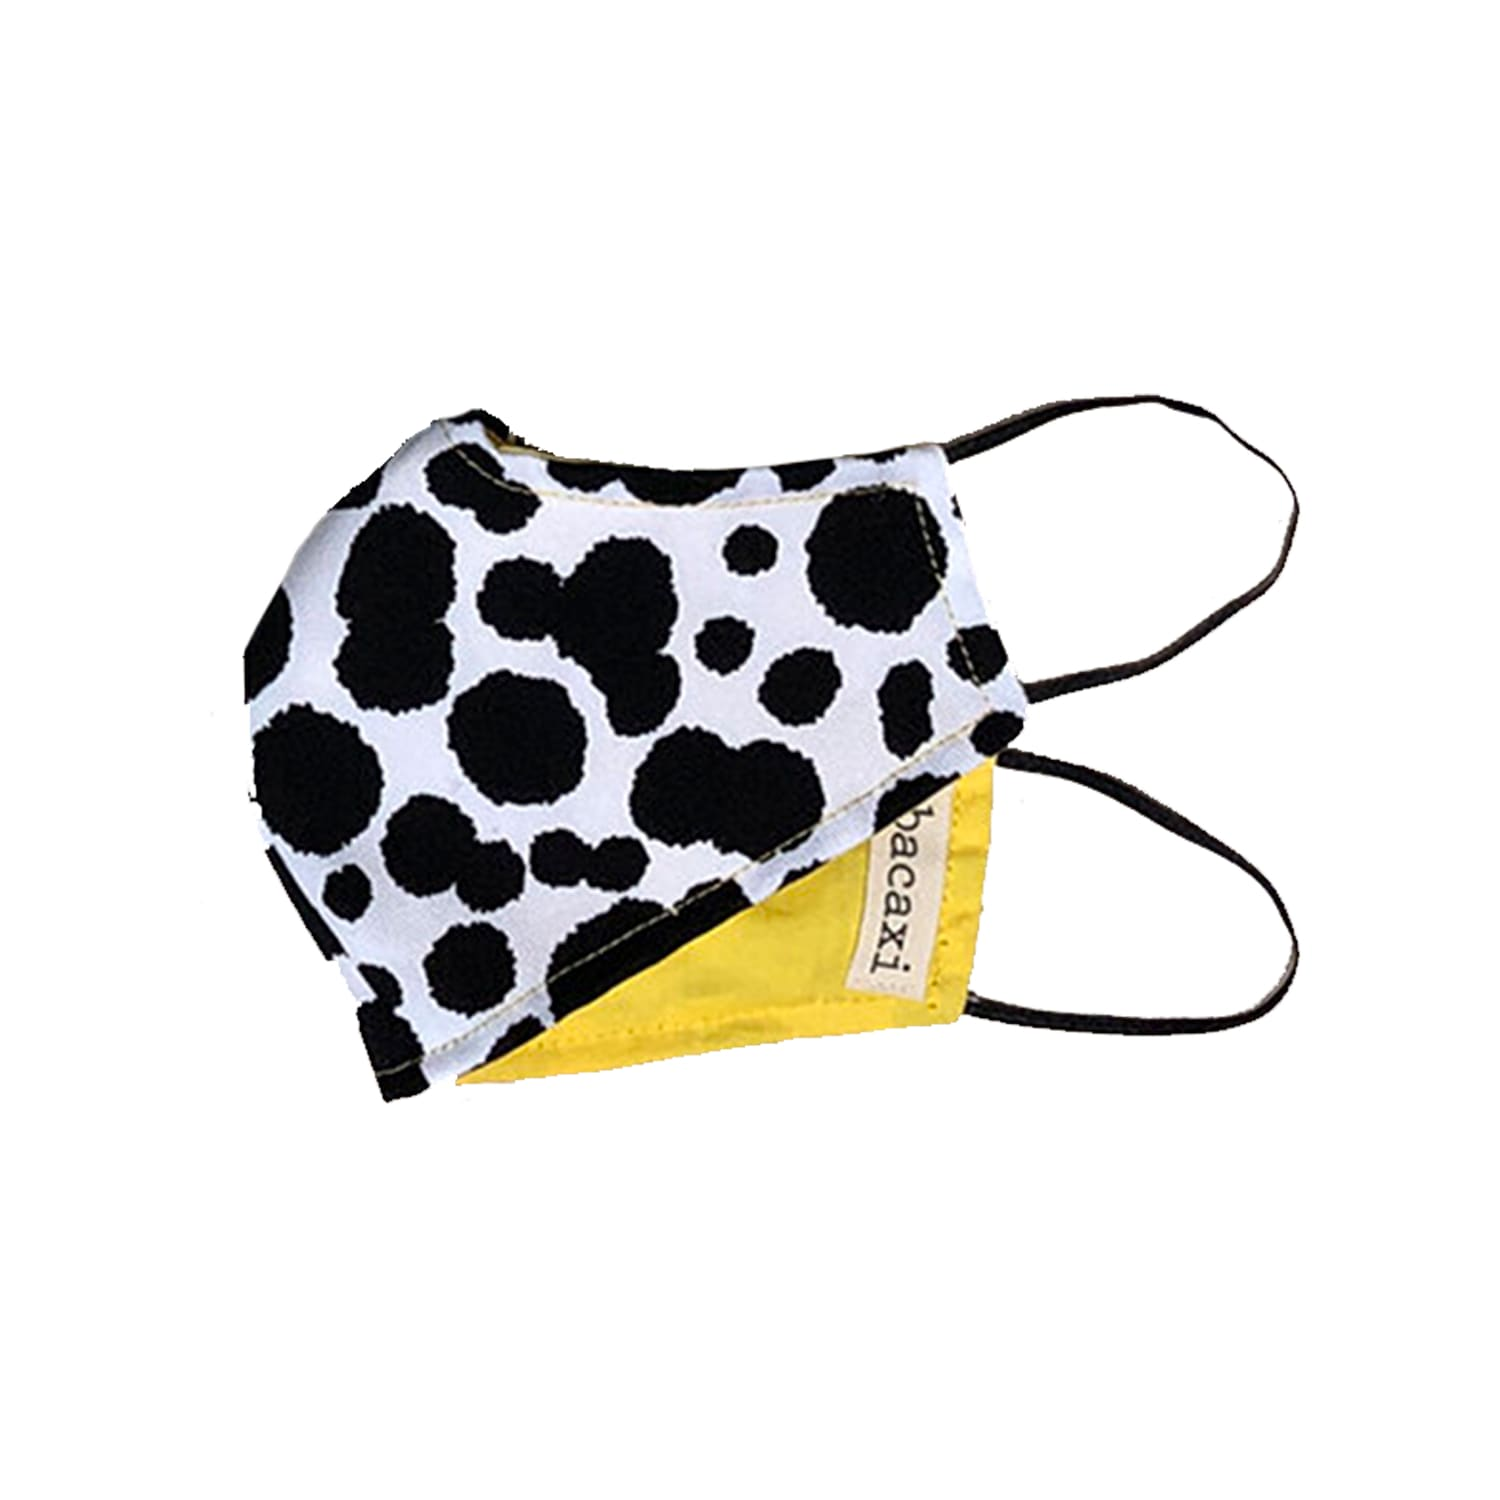 Dalmation Print Face Mask - Small Cow - Dalmation - Face